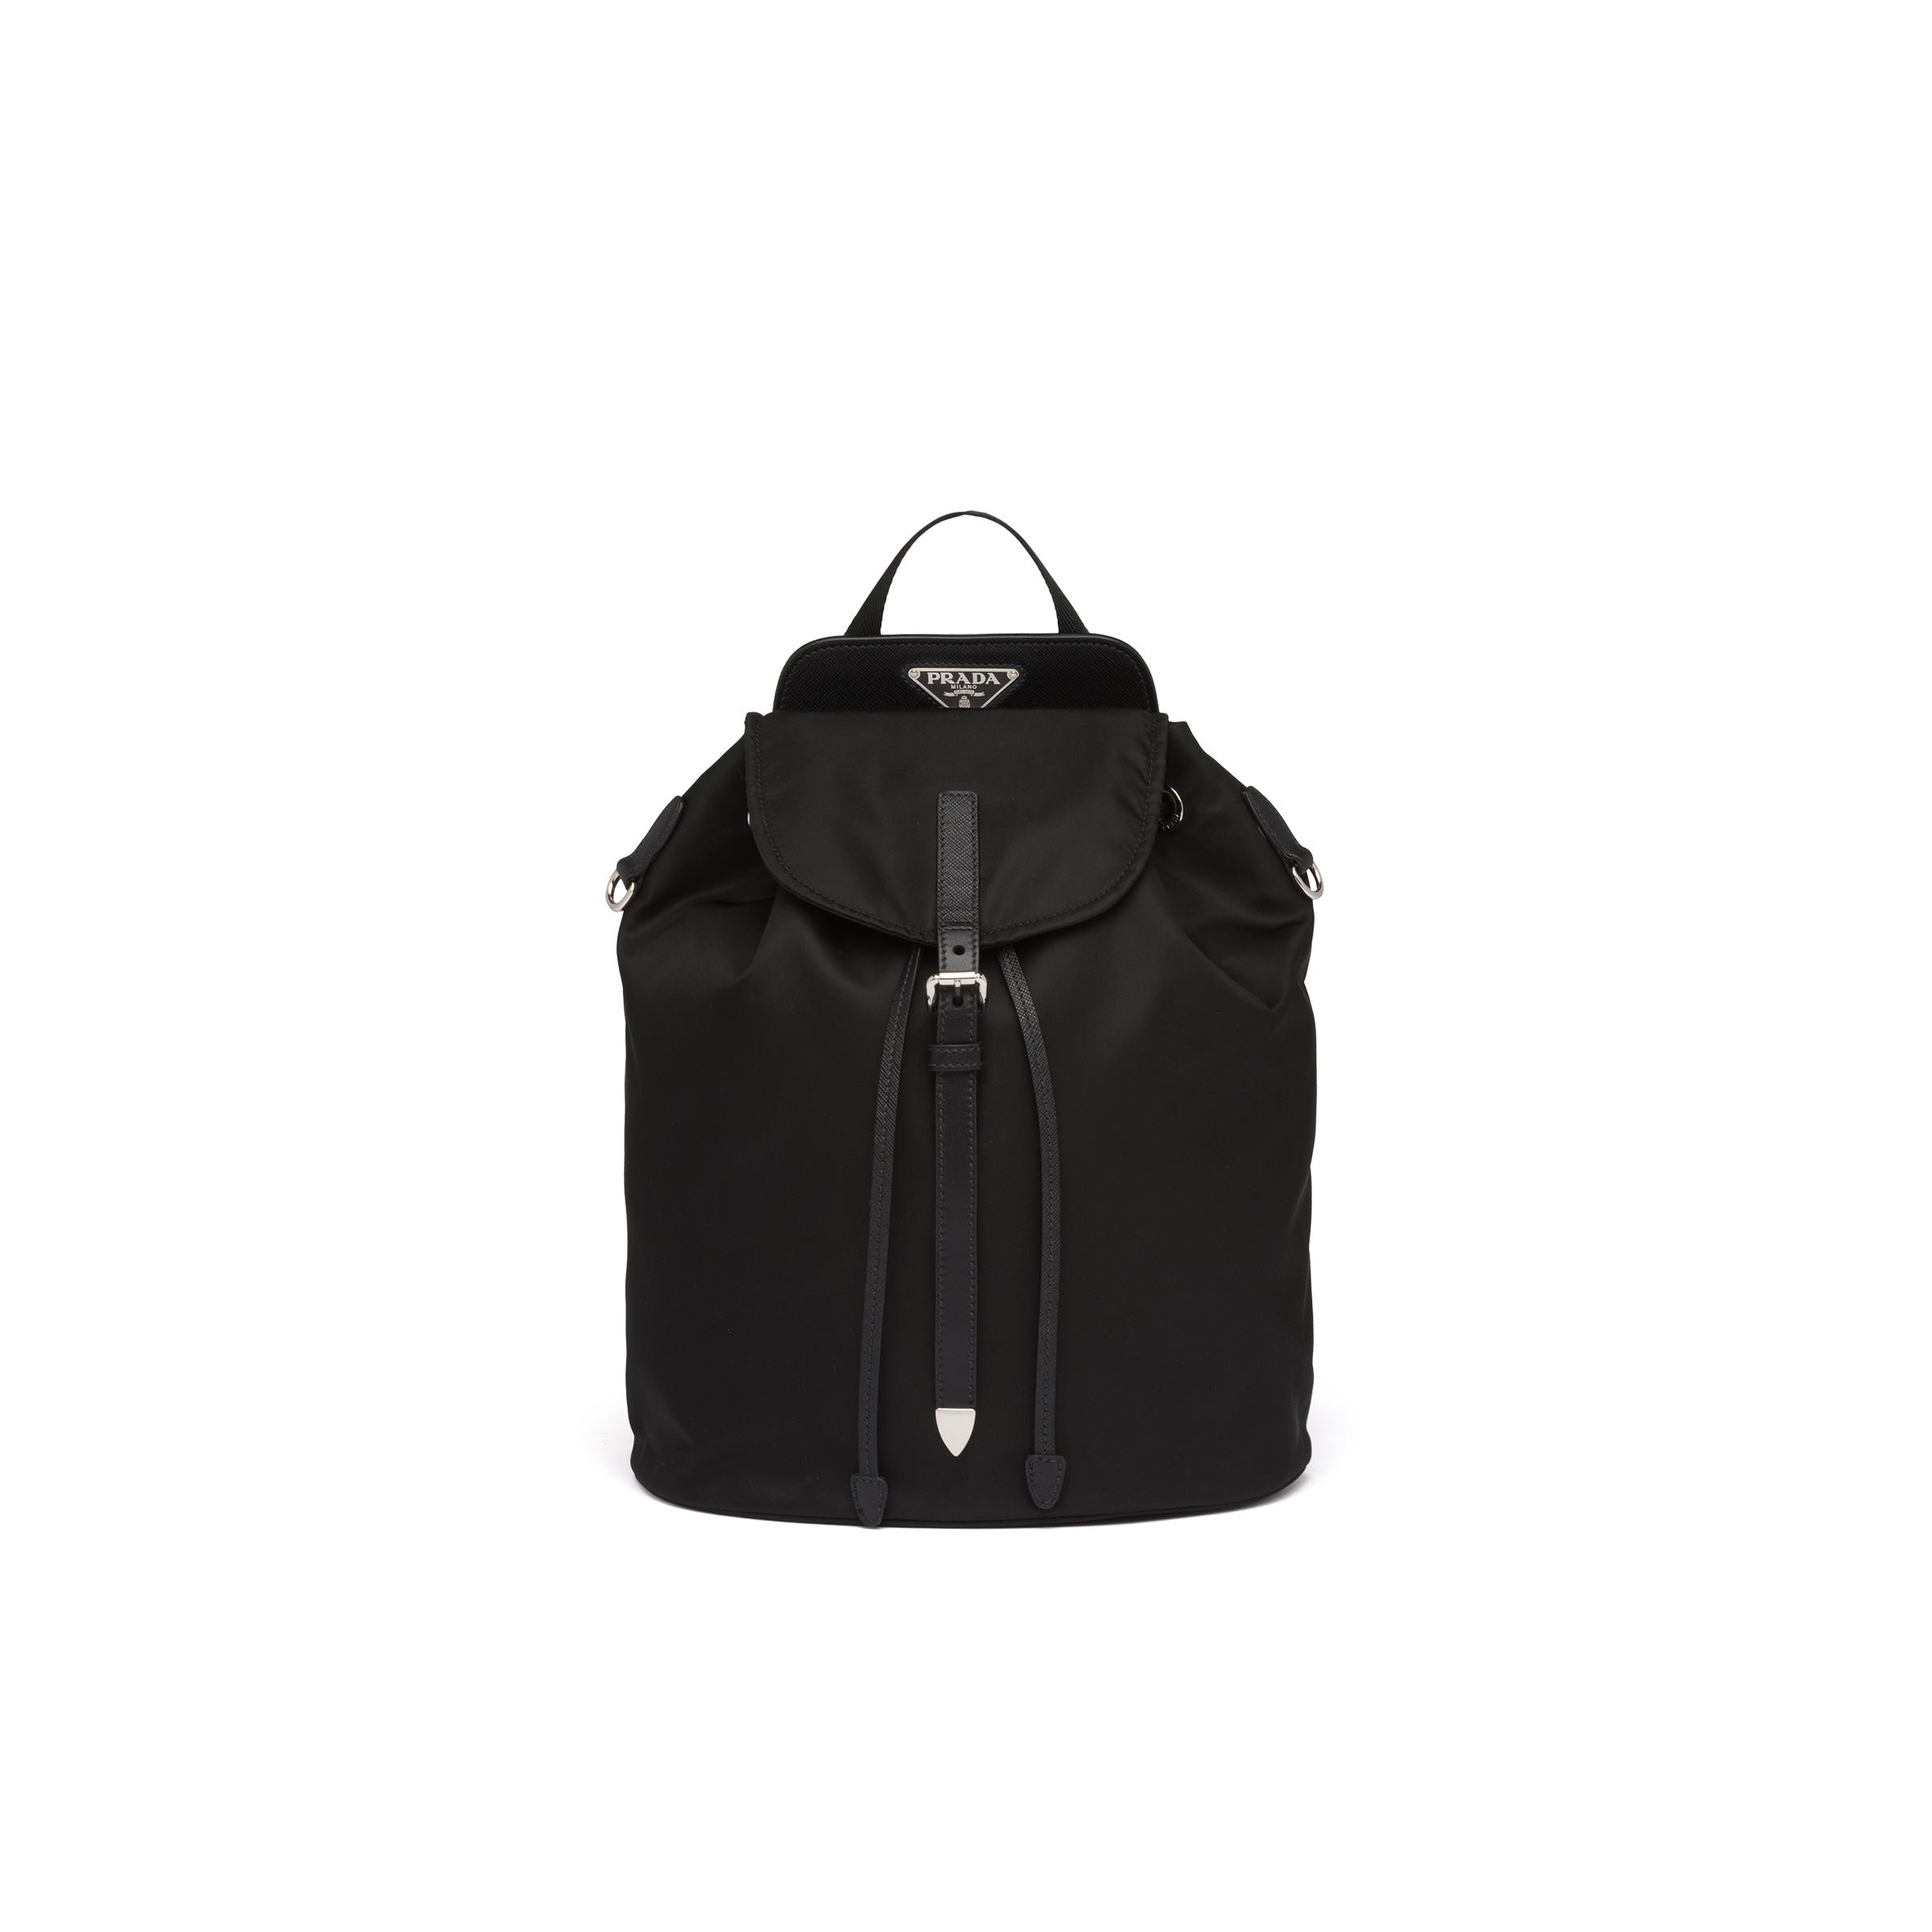 Nylon And Saffiano Leather Backpack Women Black